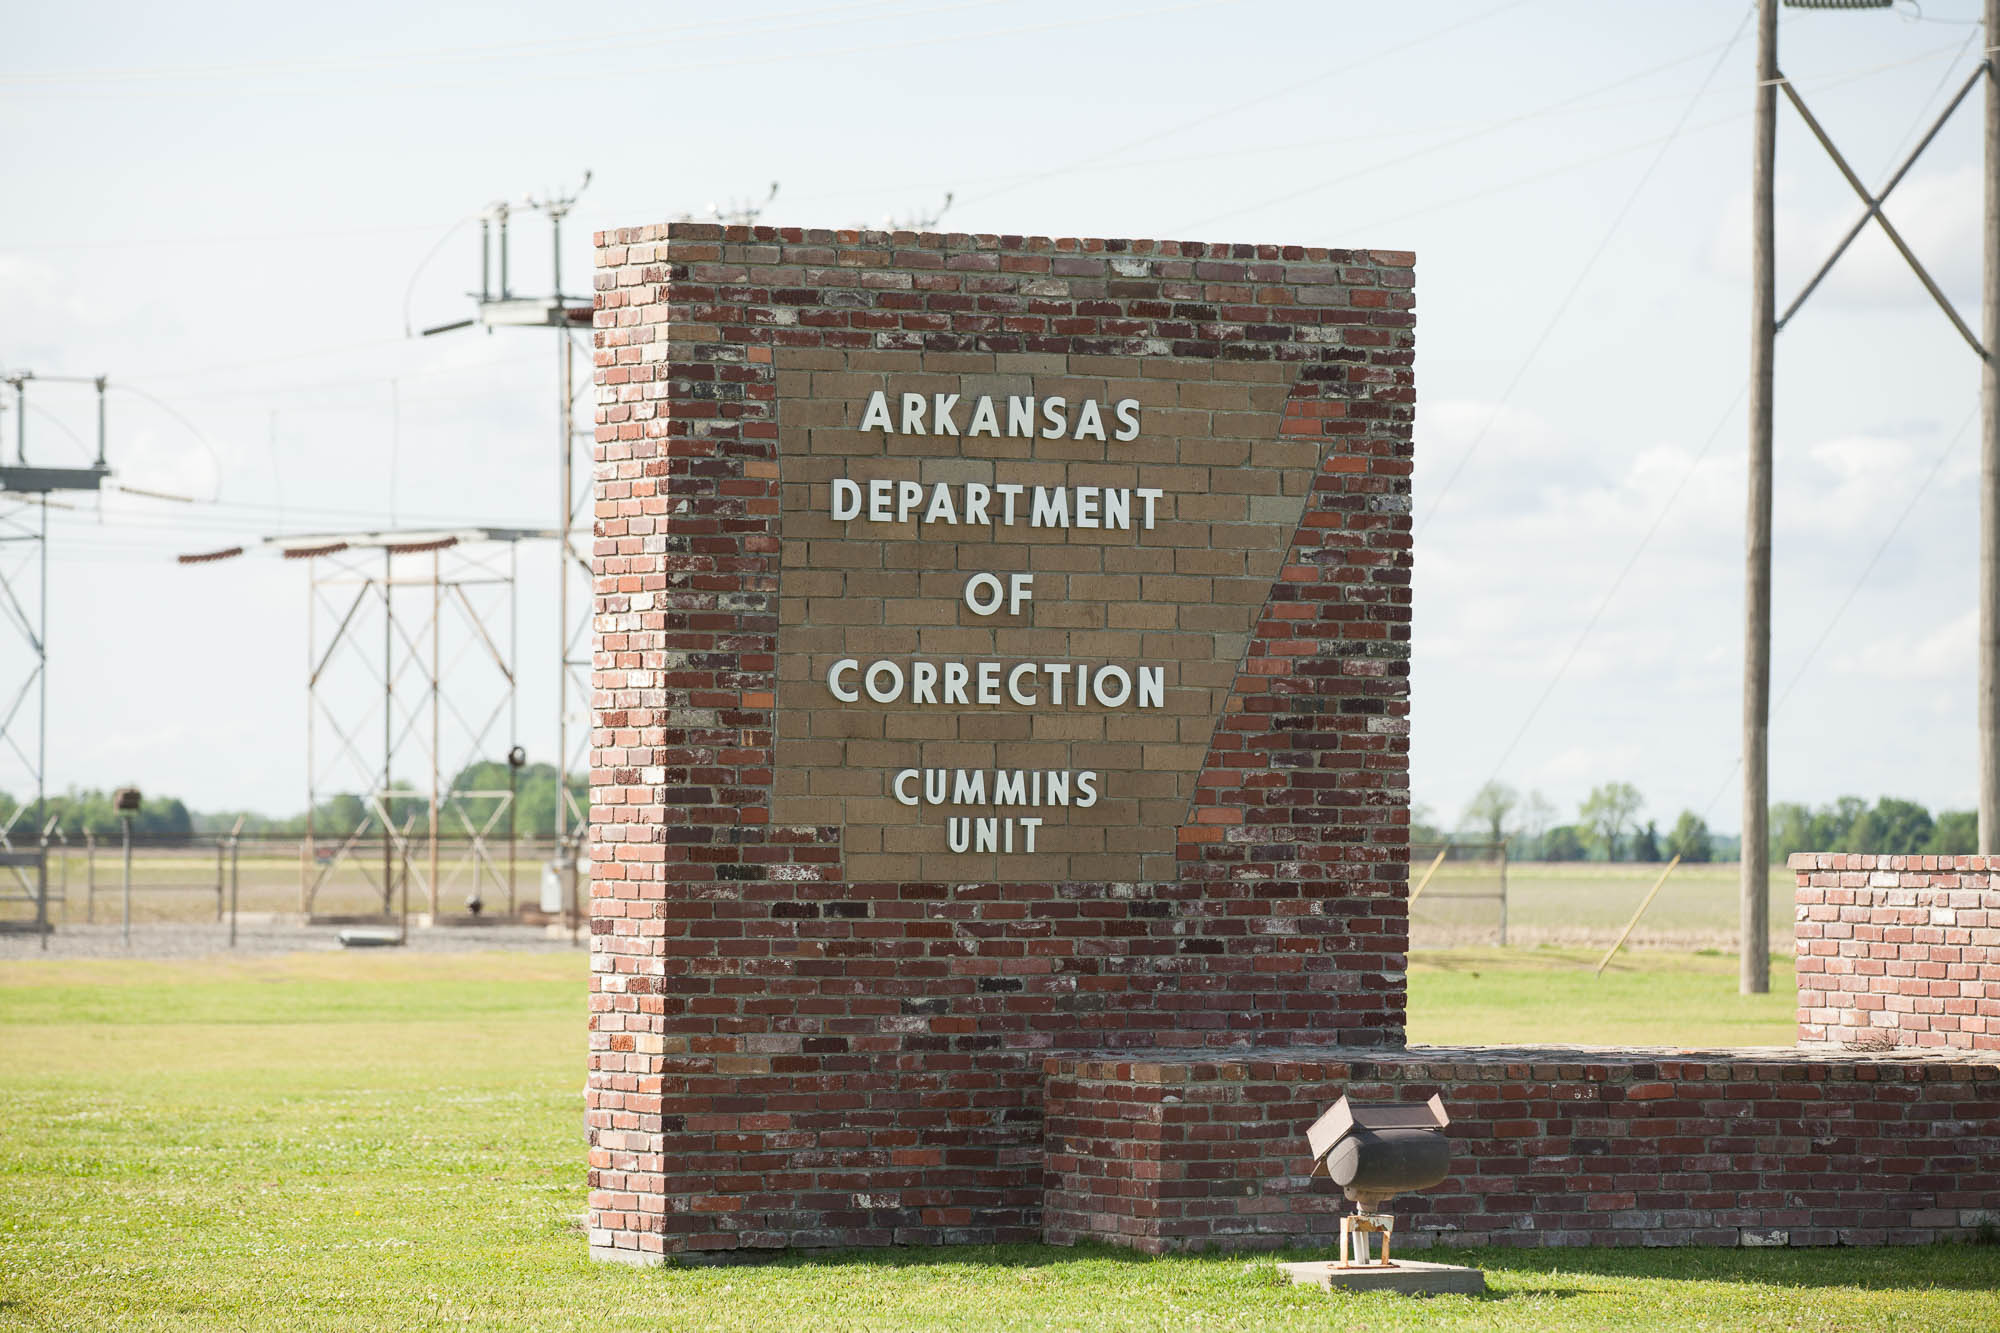 Entrance to the Cummins unit, where executions take place in Arkansas